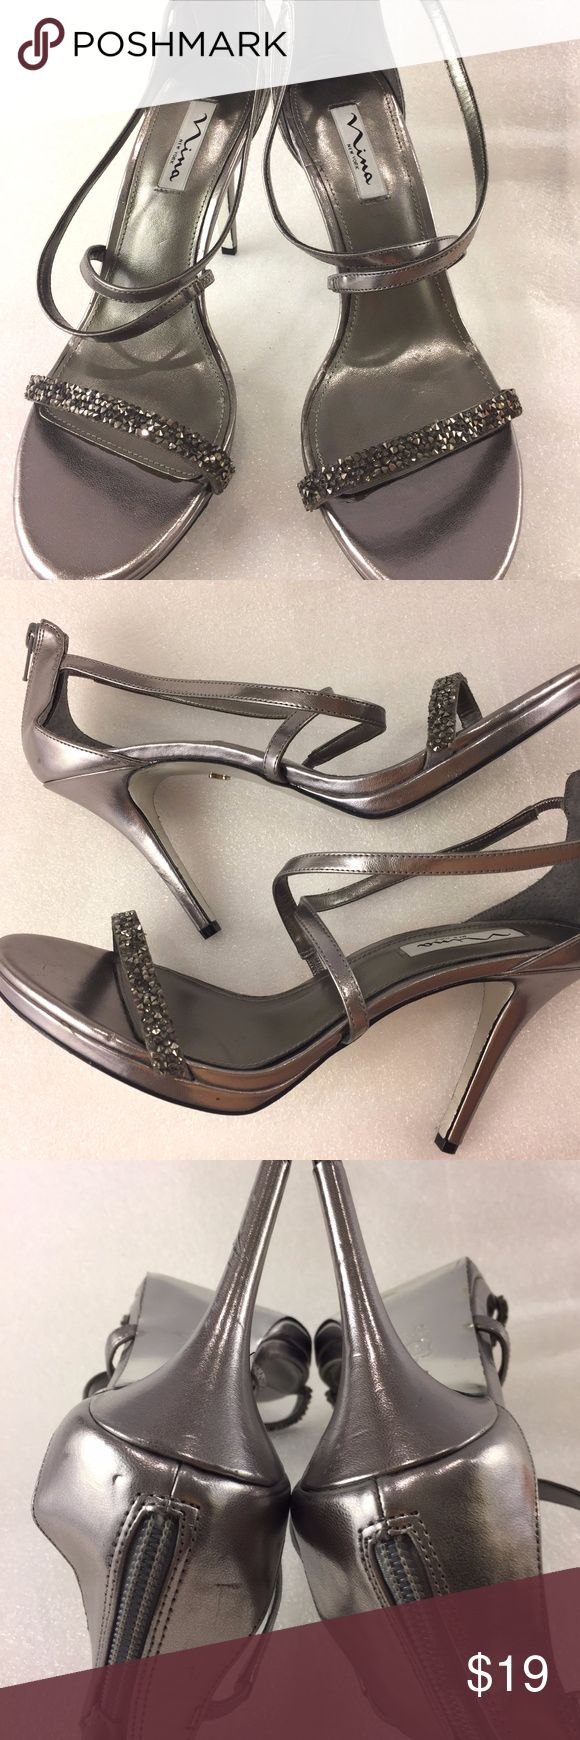 """Nina 10M Womens Strappy Heel Silver Jewel Zip For sale is a pair of strappy heels by Nina New York. There is a zipper on the back of the shoe. These are in great condition and have very little wear.   Size: 10M Length: 9.5"""" from heel to front of toe Width: 3.25"""" at widest part of sole Heel: 4""""  I'll ship within 24 hours  Thank you Nina Shoes Heels"""